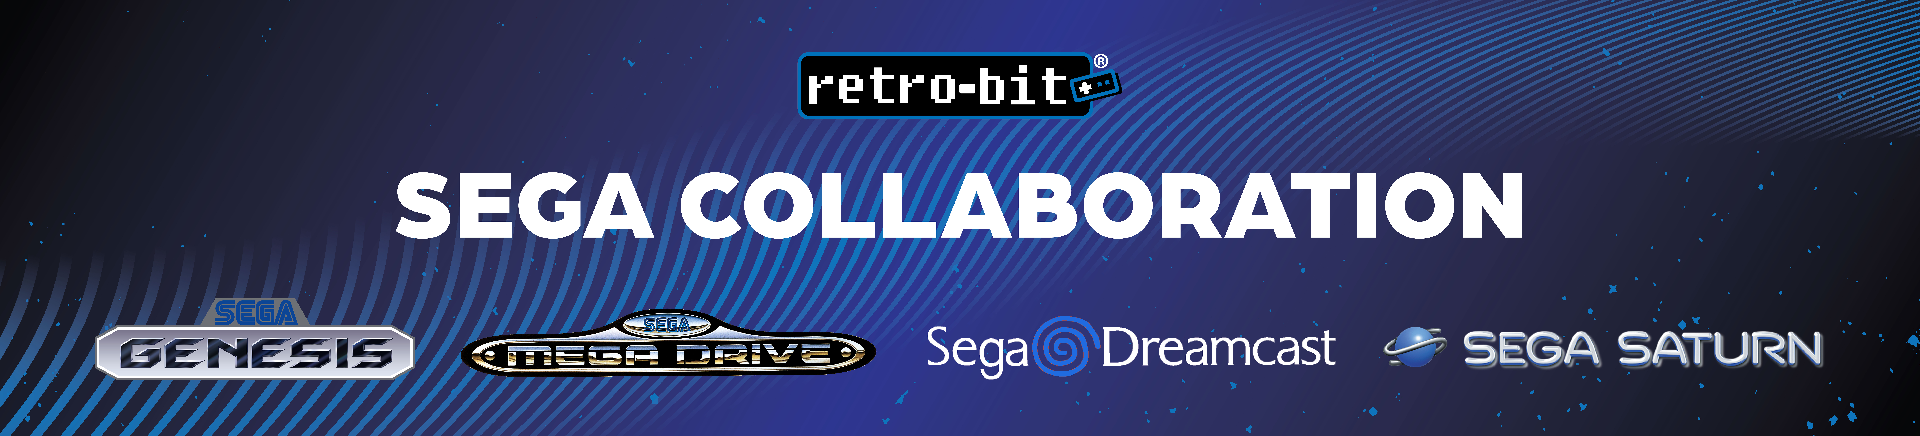 SEGA Collaboration EU